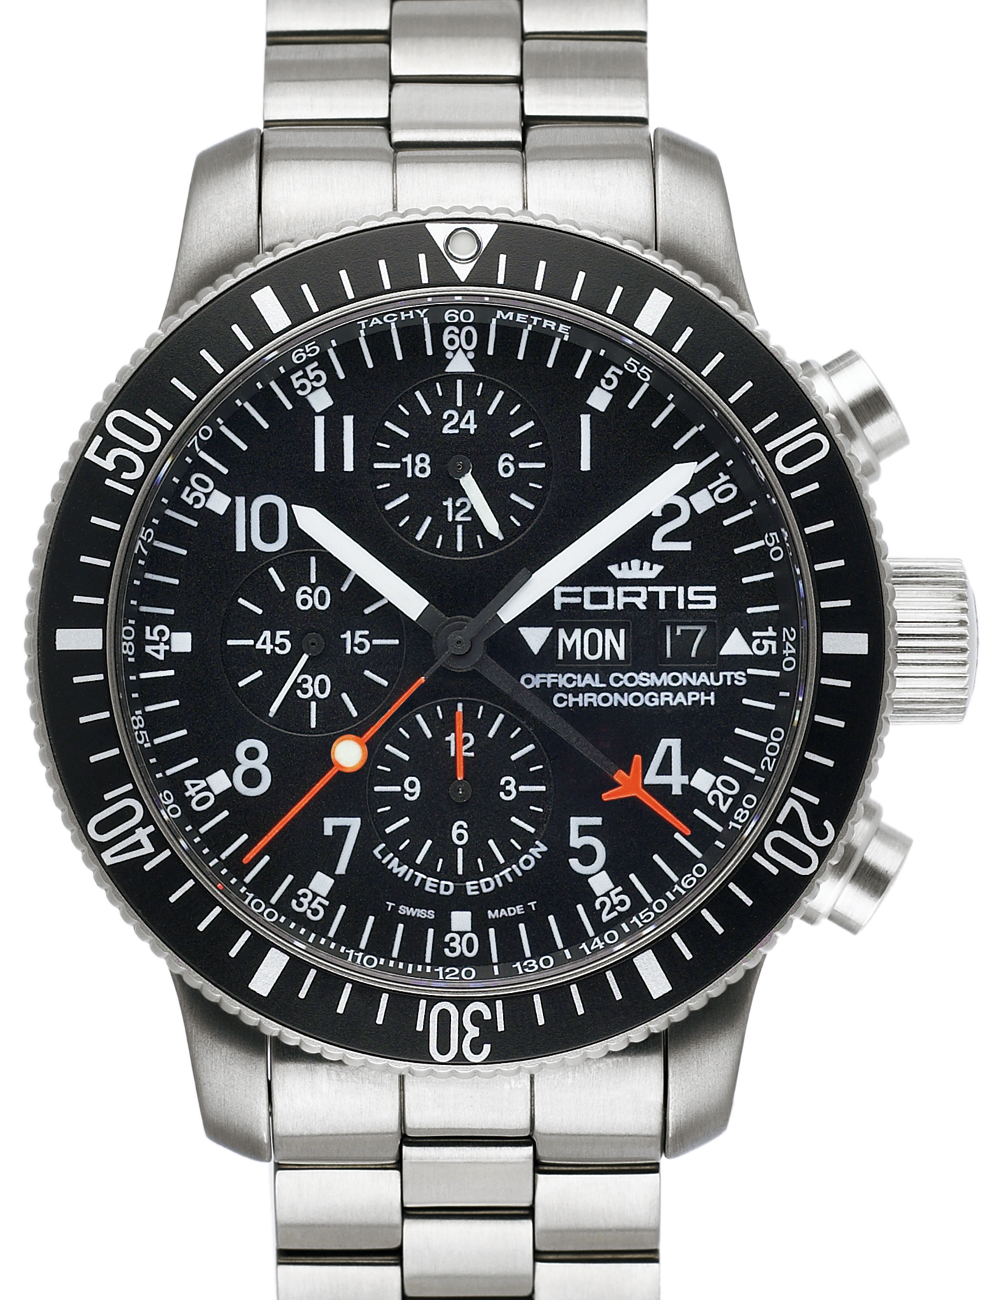 Titan Watches With Price List For Man